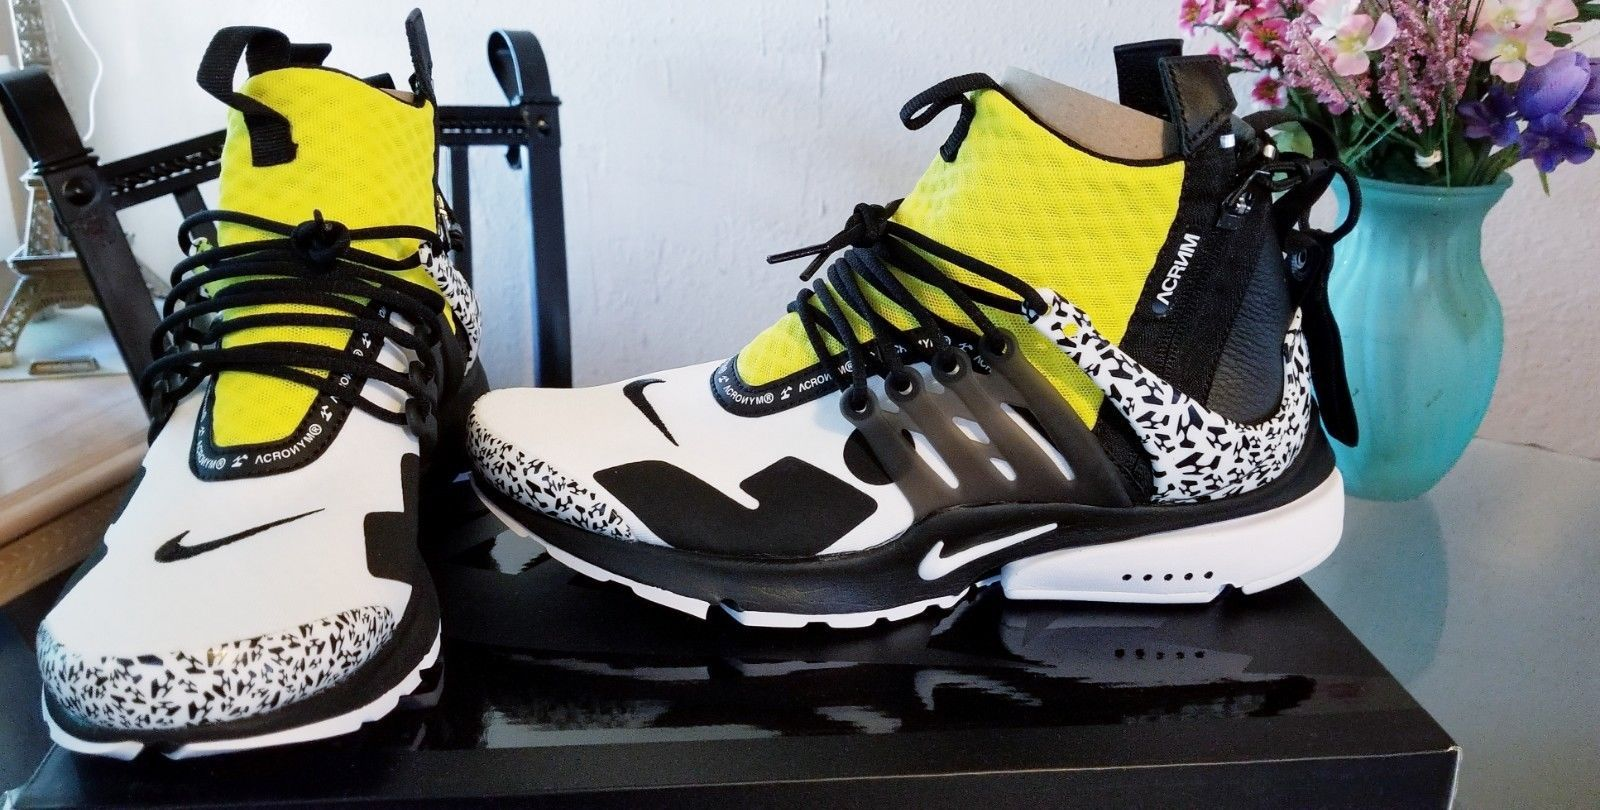 57ebaa4ffd762 Nike Air Presto Mid Acronym Dynamic Yellow Size 9 New deadstock ...